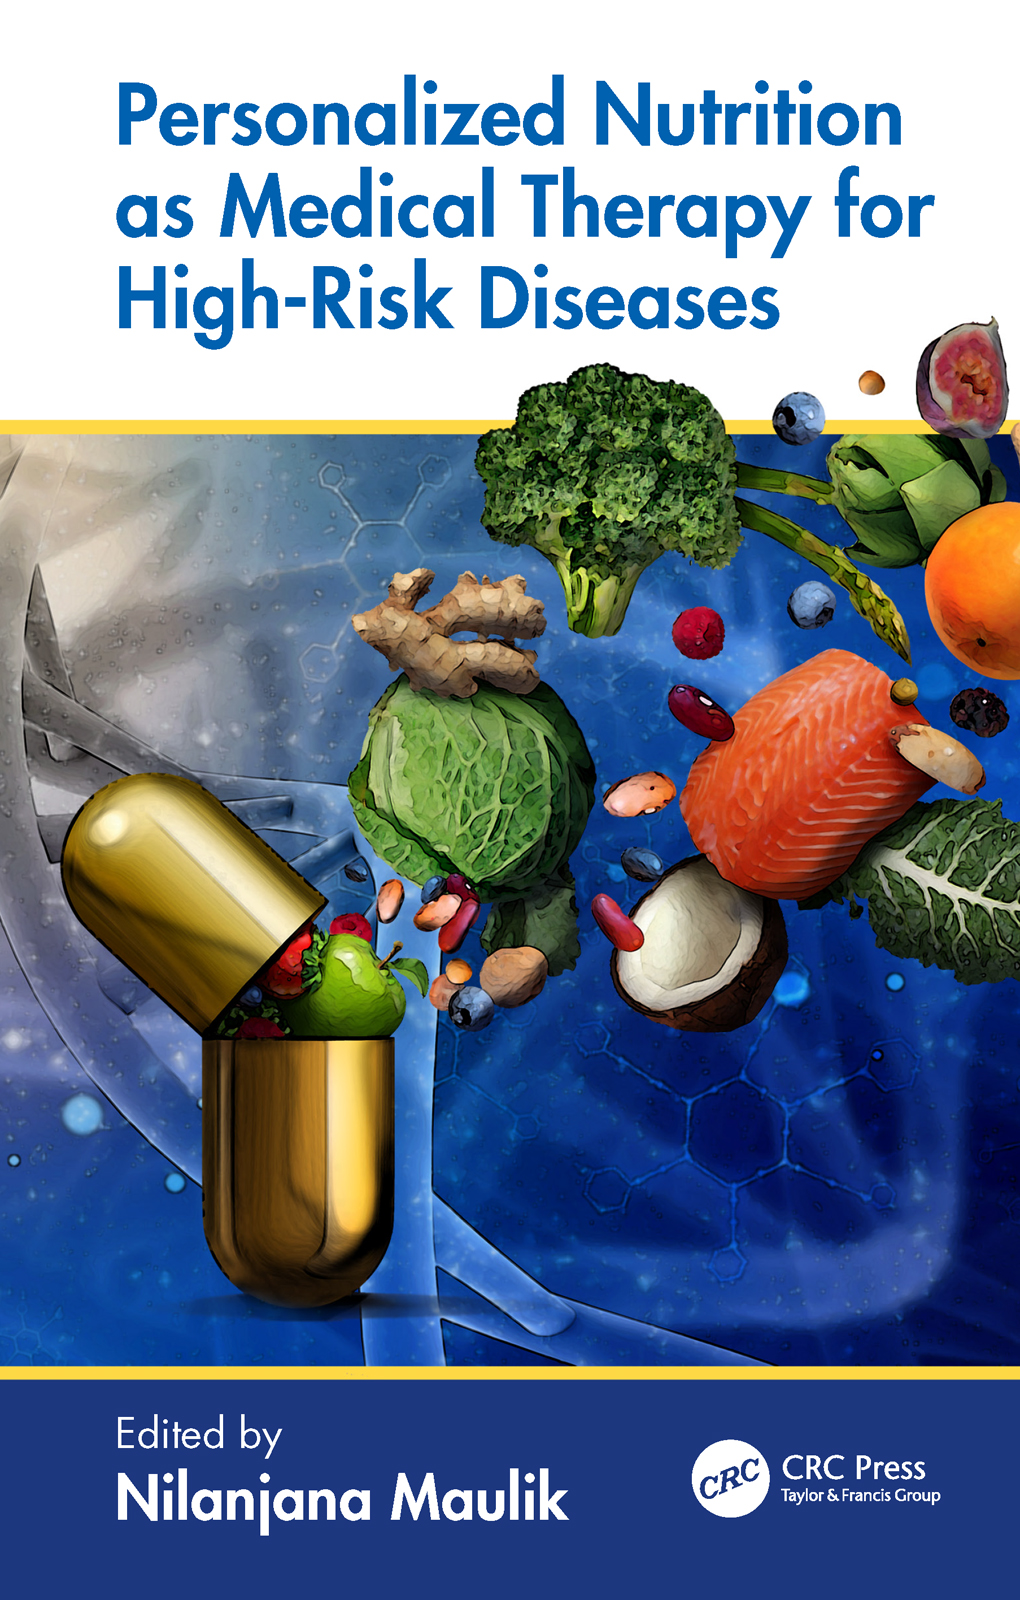 Roles of Daily Diet and Beta-Adrenergic System in the Treatment of Obesity and Diabetes